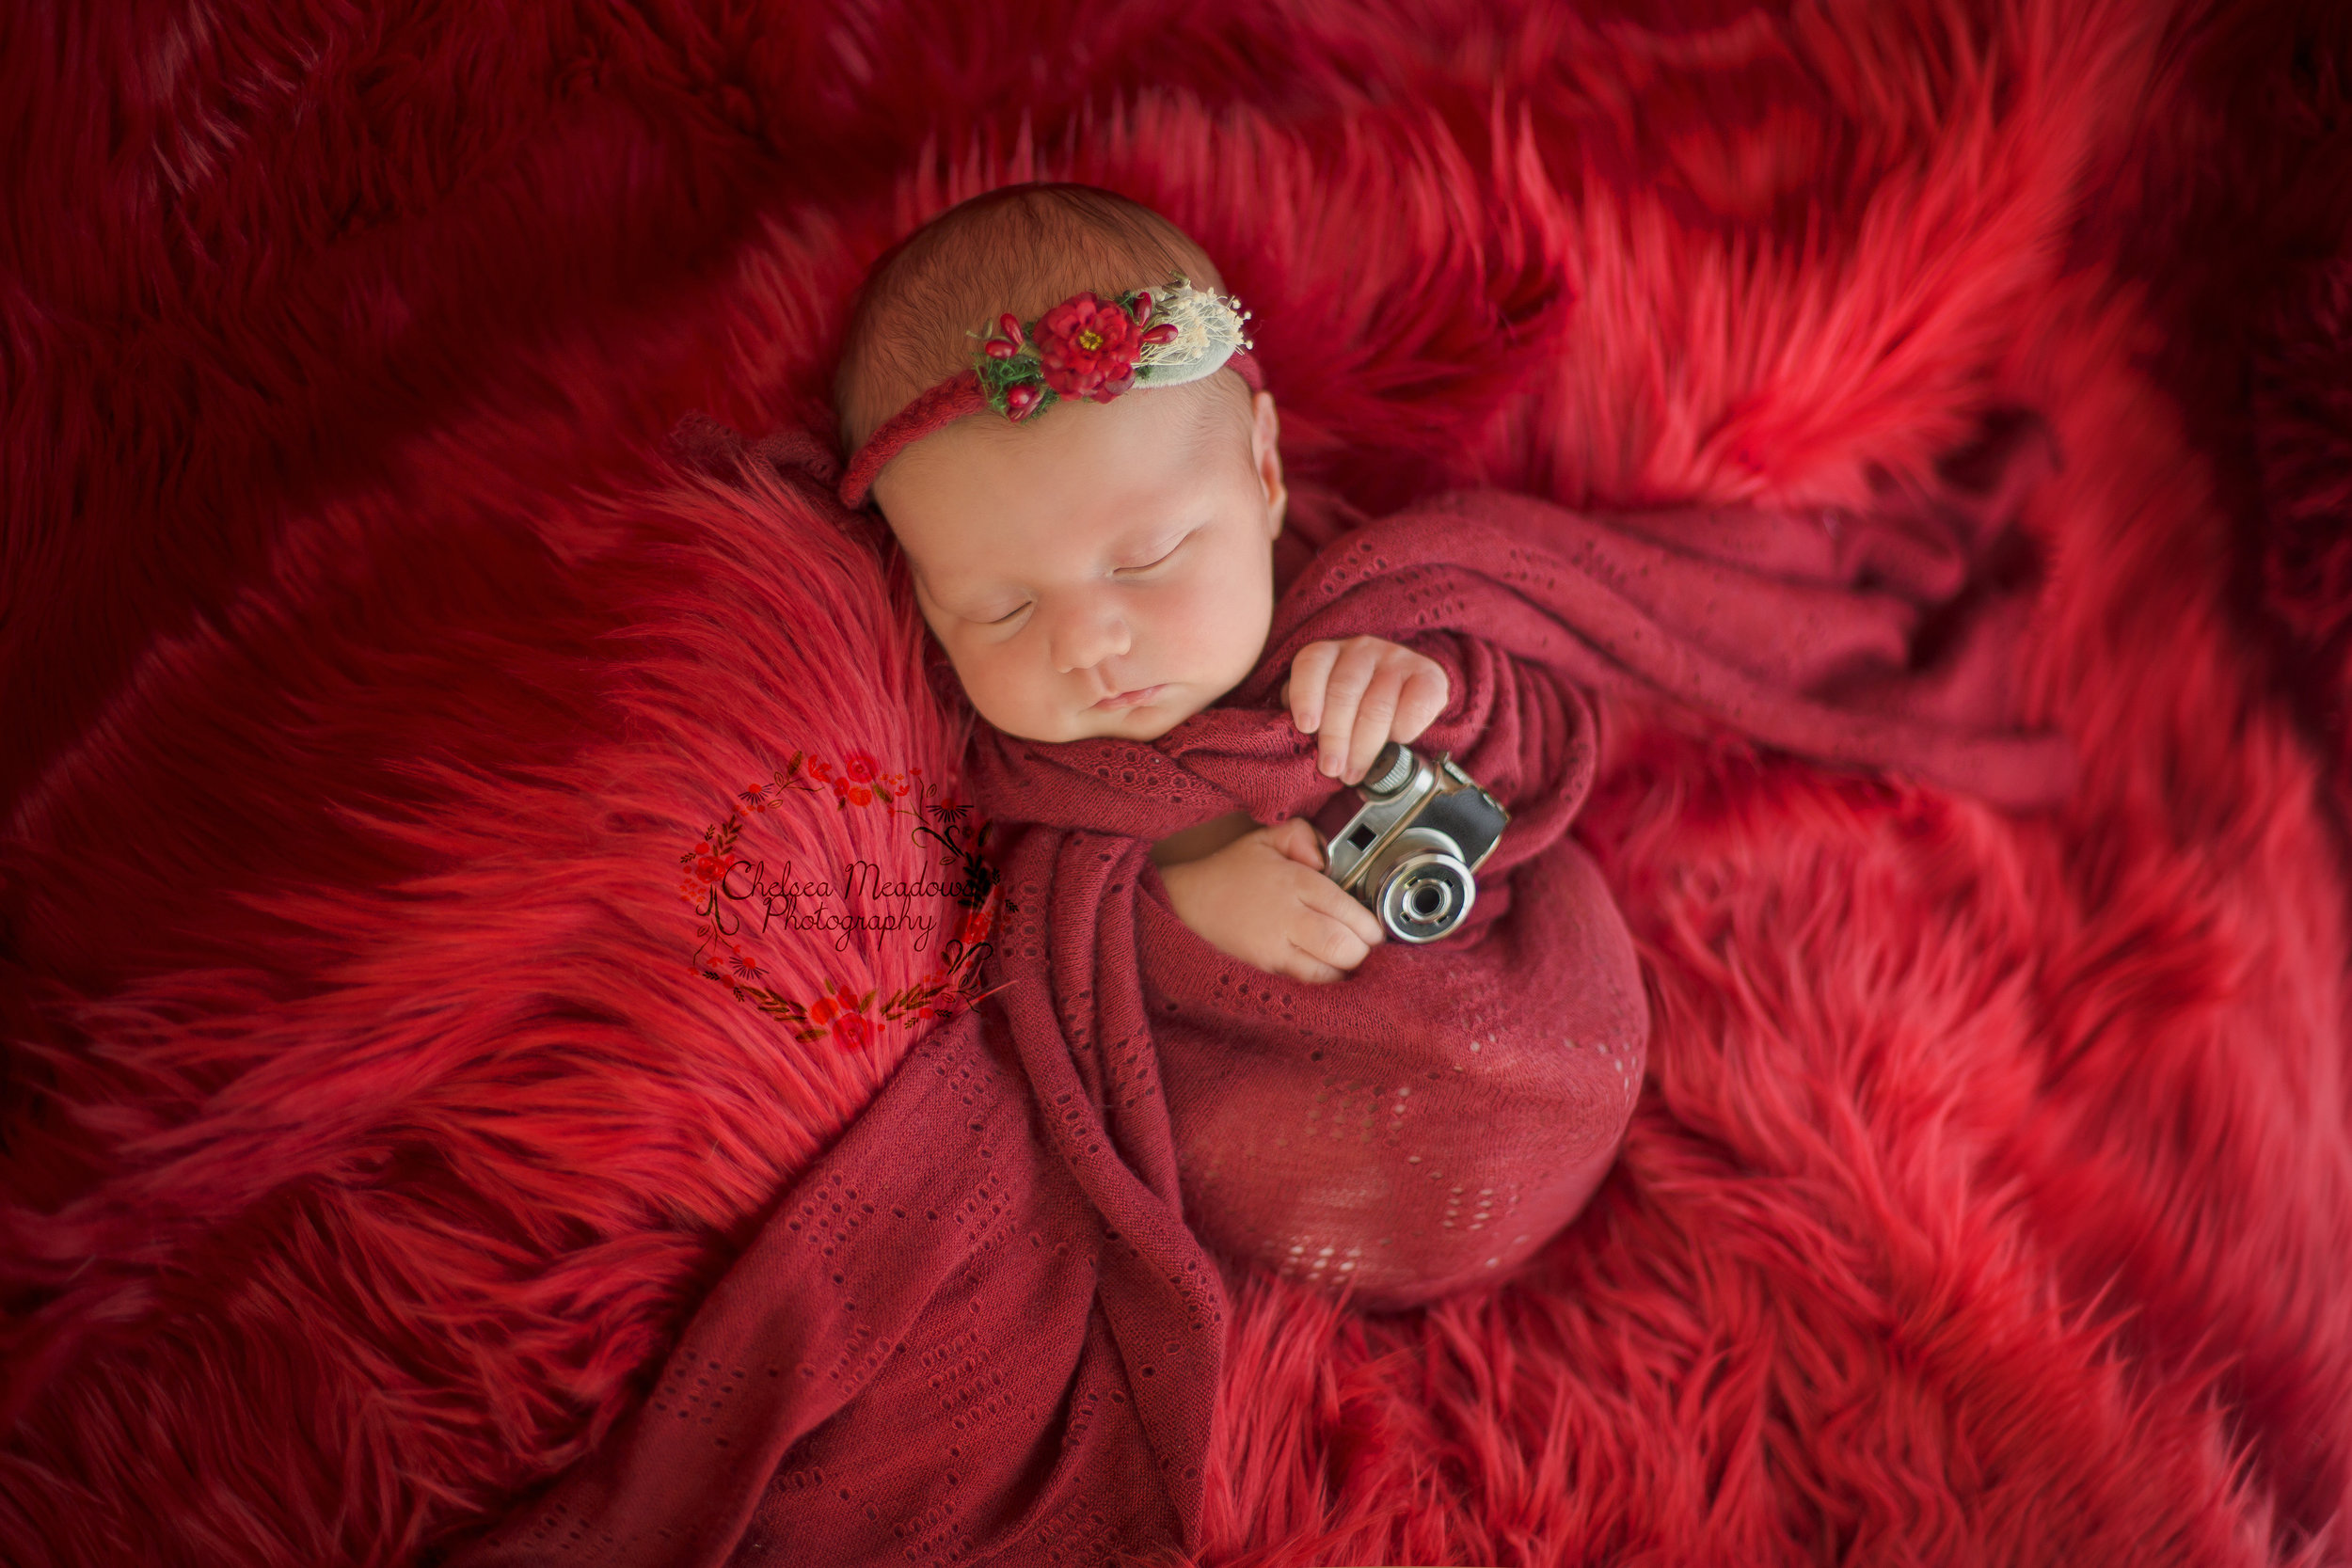 Marley Newborn Photos - Nashville Newborn Photographer - Chelsea Meadows Photography (3)_edited-1.jpg